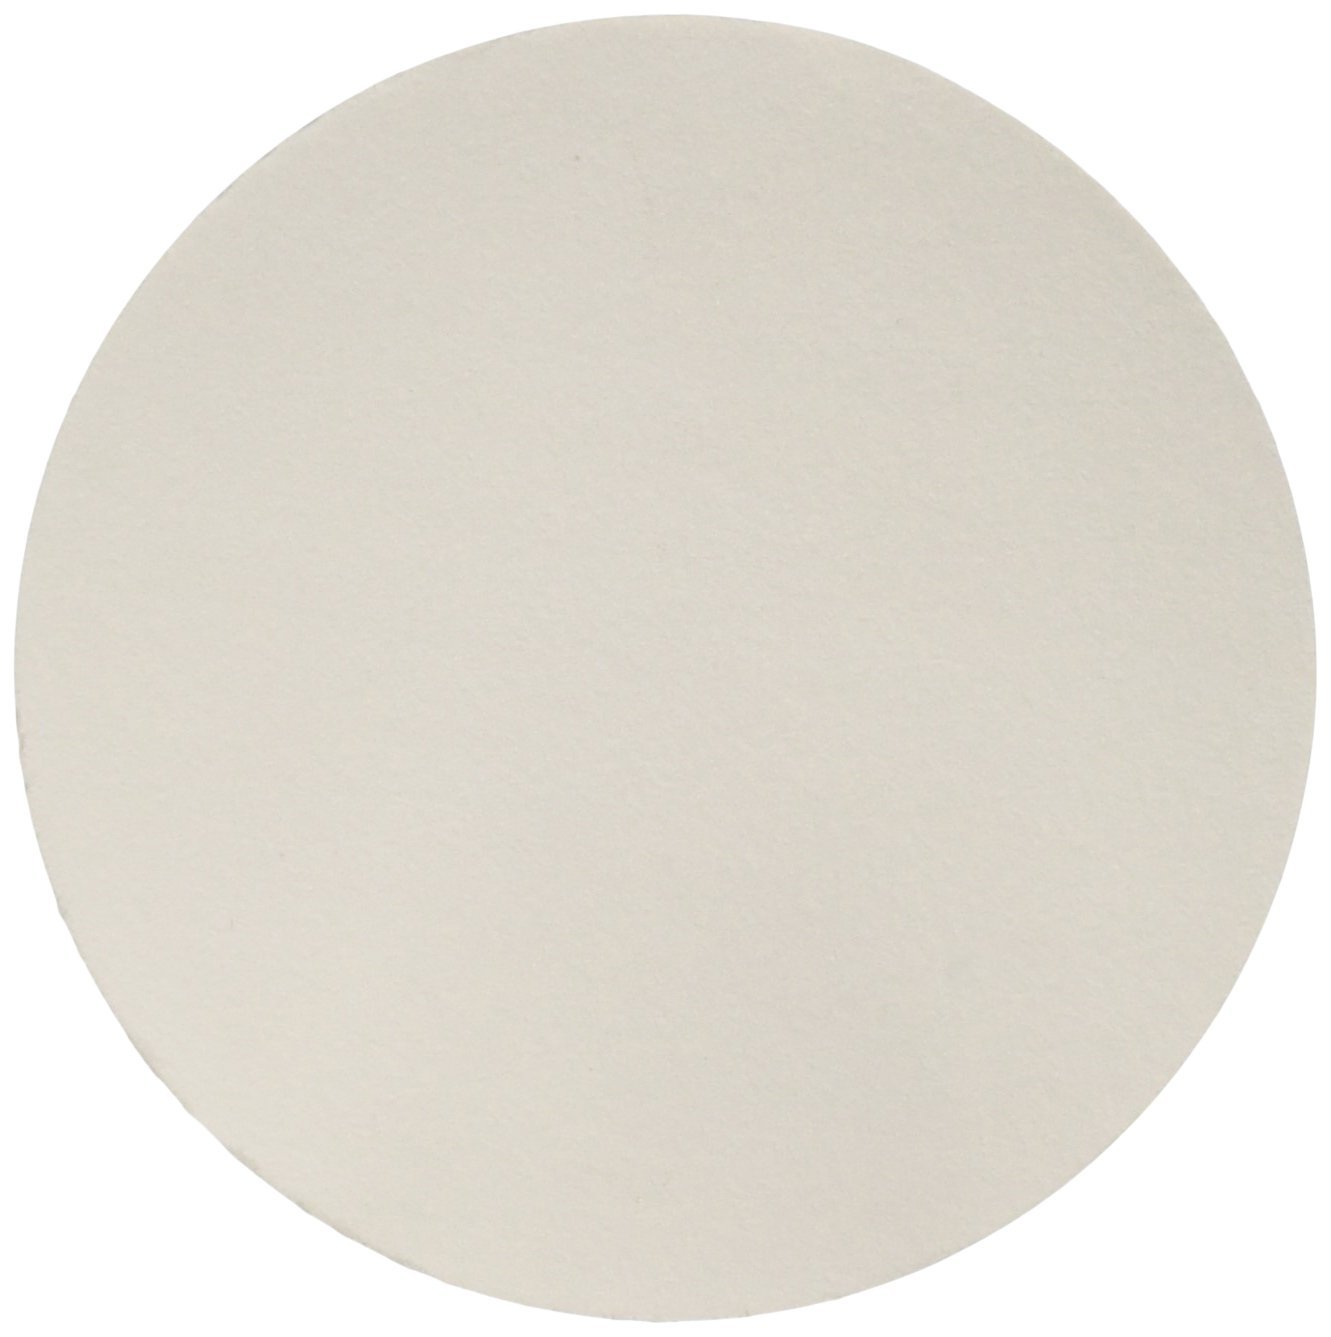 Whatman 4712N20PK 1004090 Grade 4 Qualitative Filter Paper, 90 mm Thick and Max Volume 1621 ml/m (Pack of 100) by Whatman